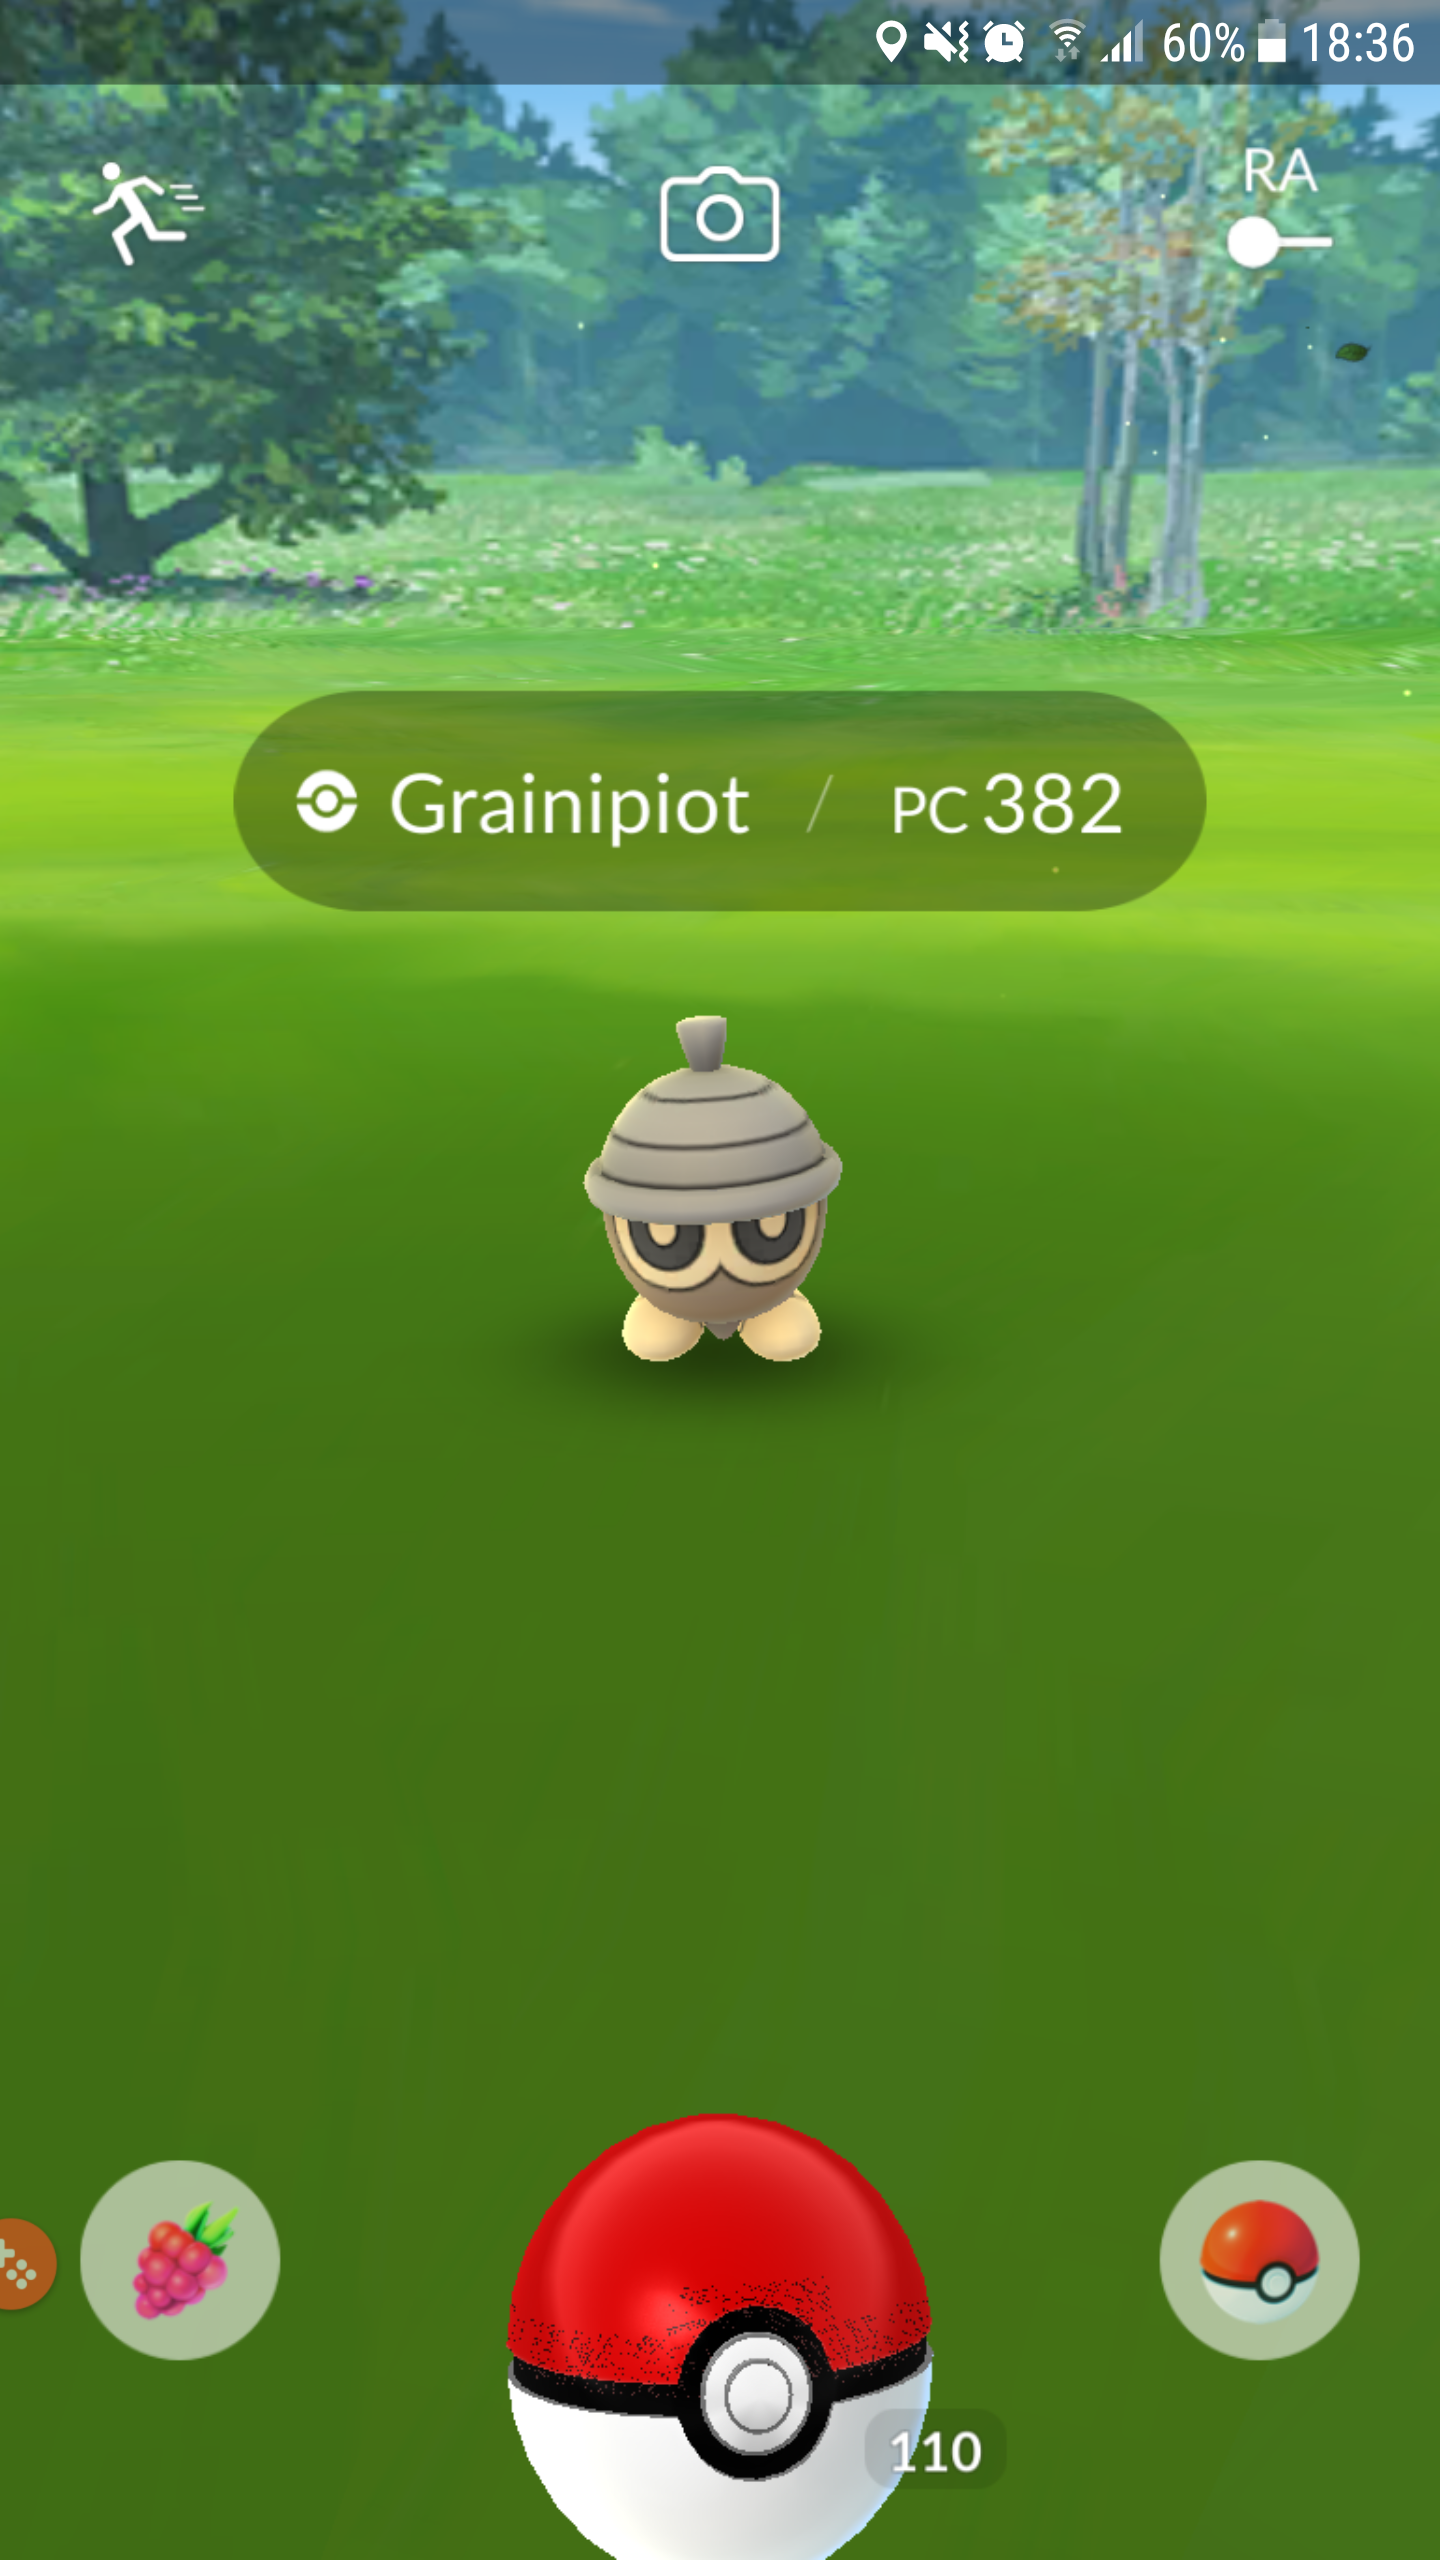 Pokémon Go - Grainipiot - Pc 382